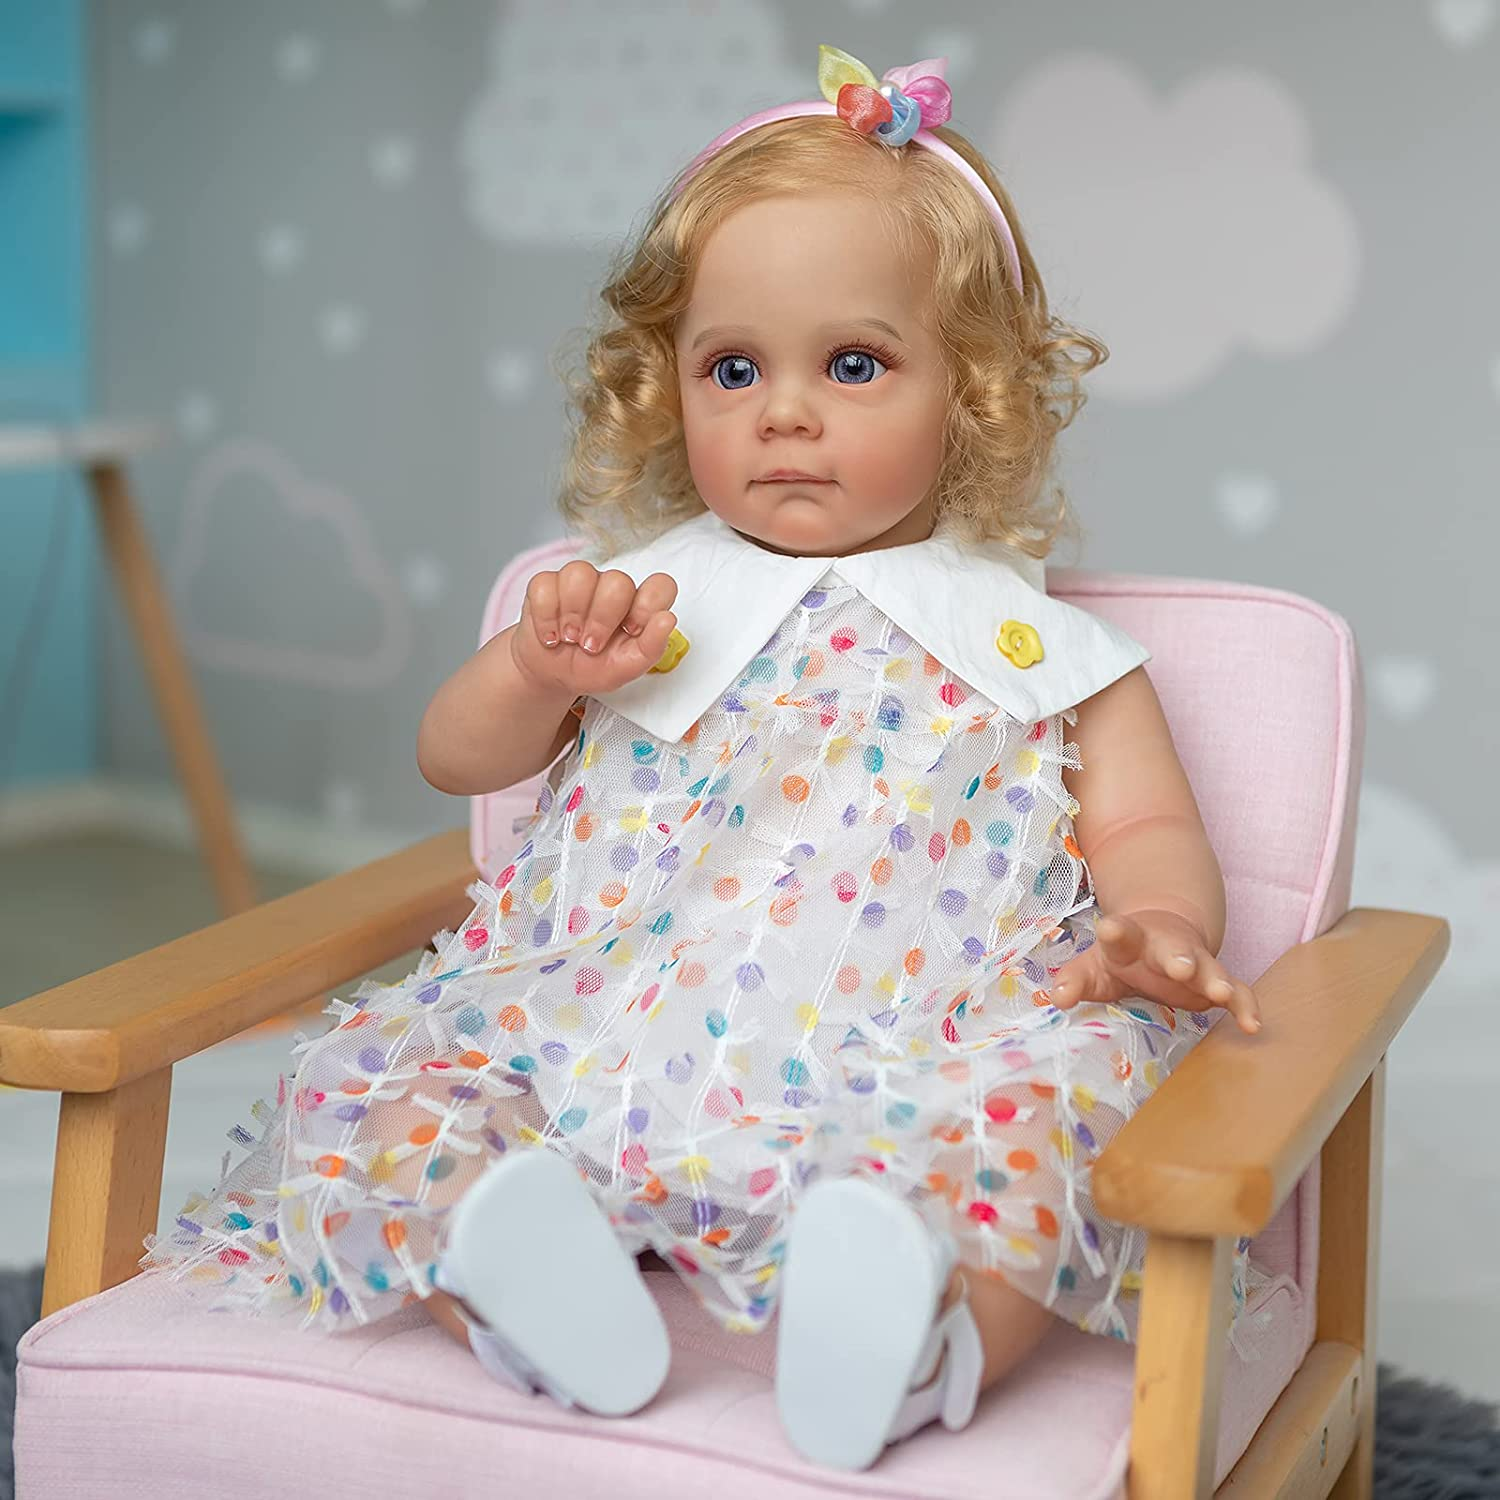 Pinky Reborn 60CM Reborn Baby Dolls Handmade 24inch Reborn Toddler Maggie Detailed Lifelike Painting Rooted Long Curly Hair Collectible Art Doll